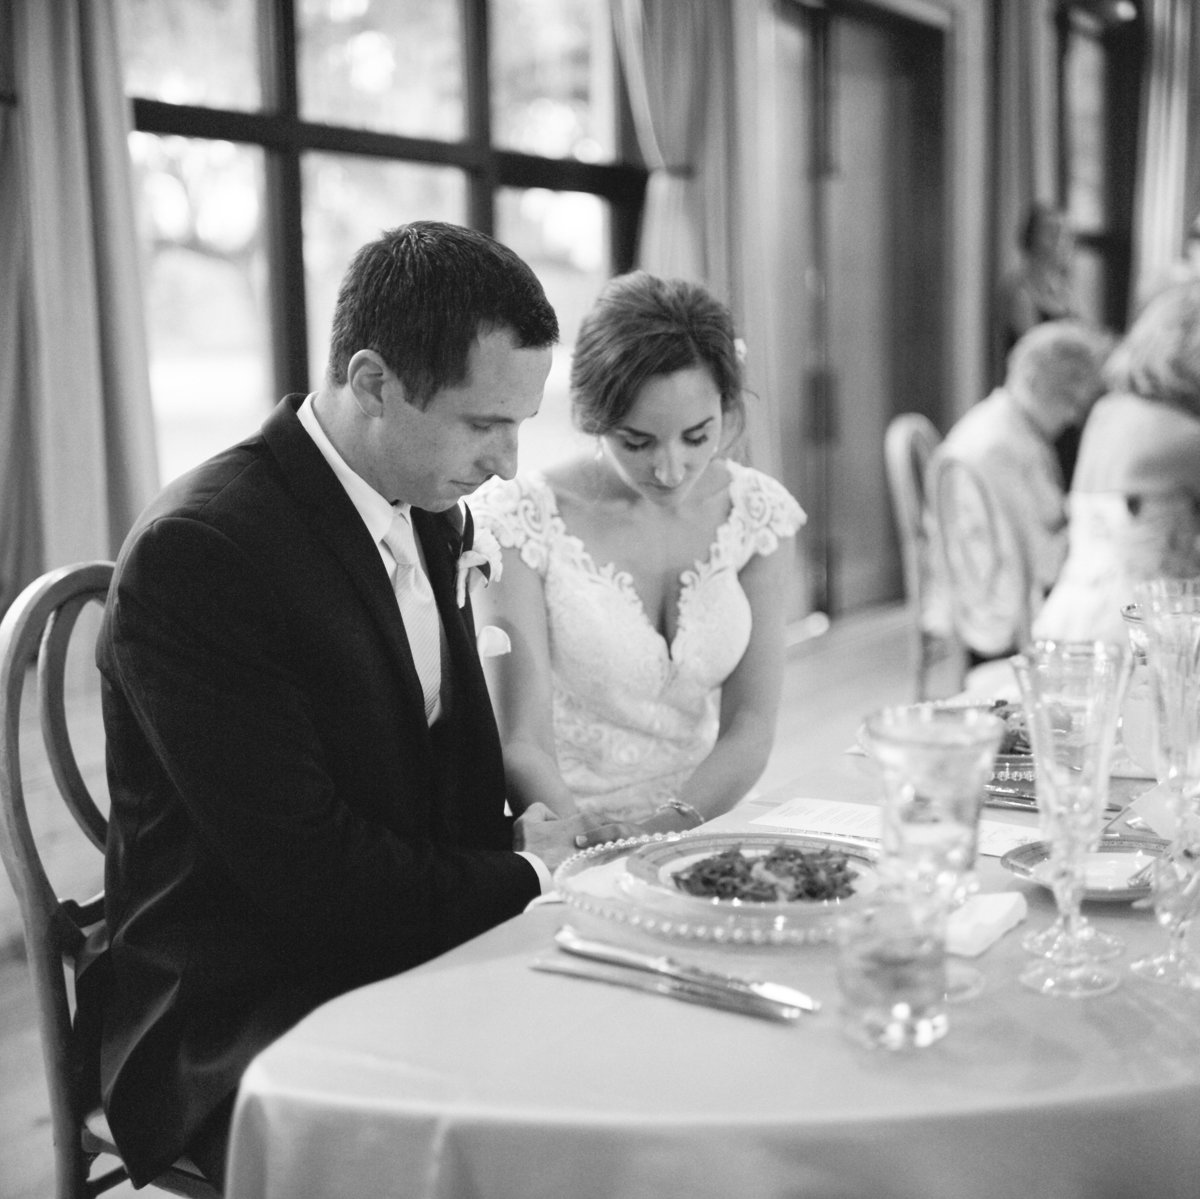 charleston-wedding-venues-middleton-place-philip-casey-photography-109